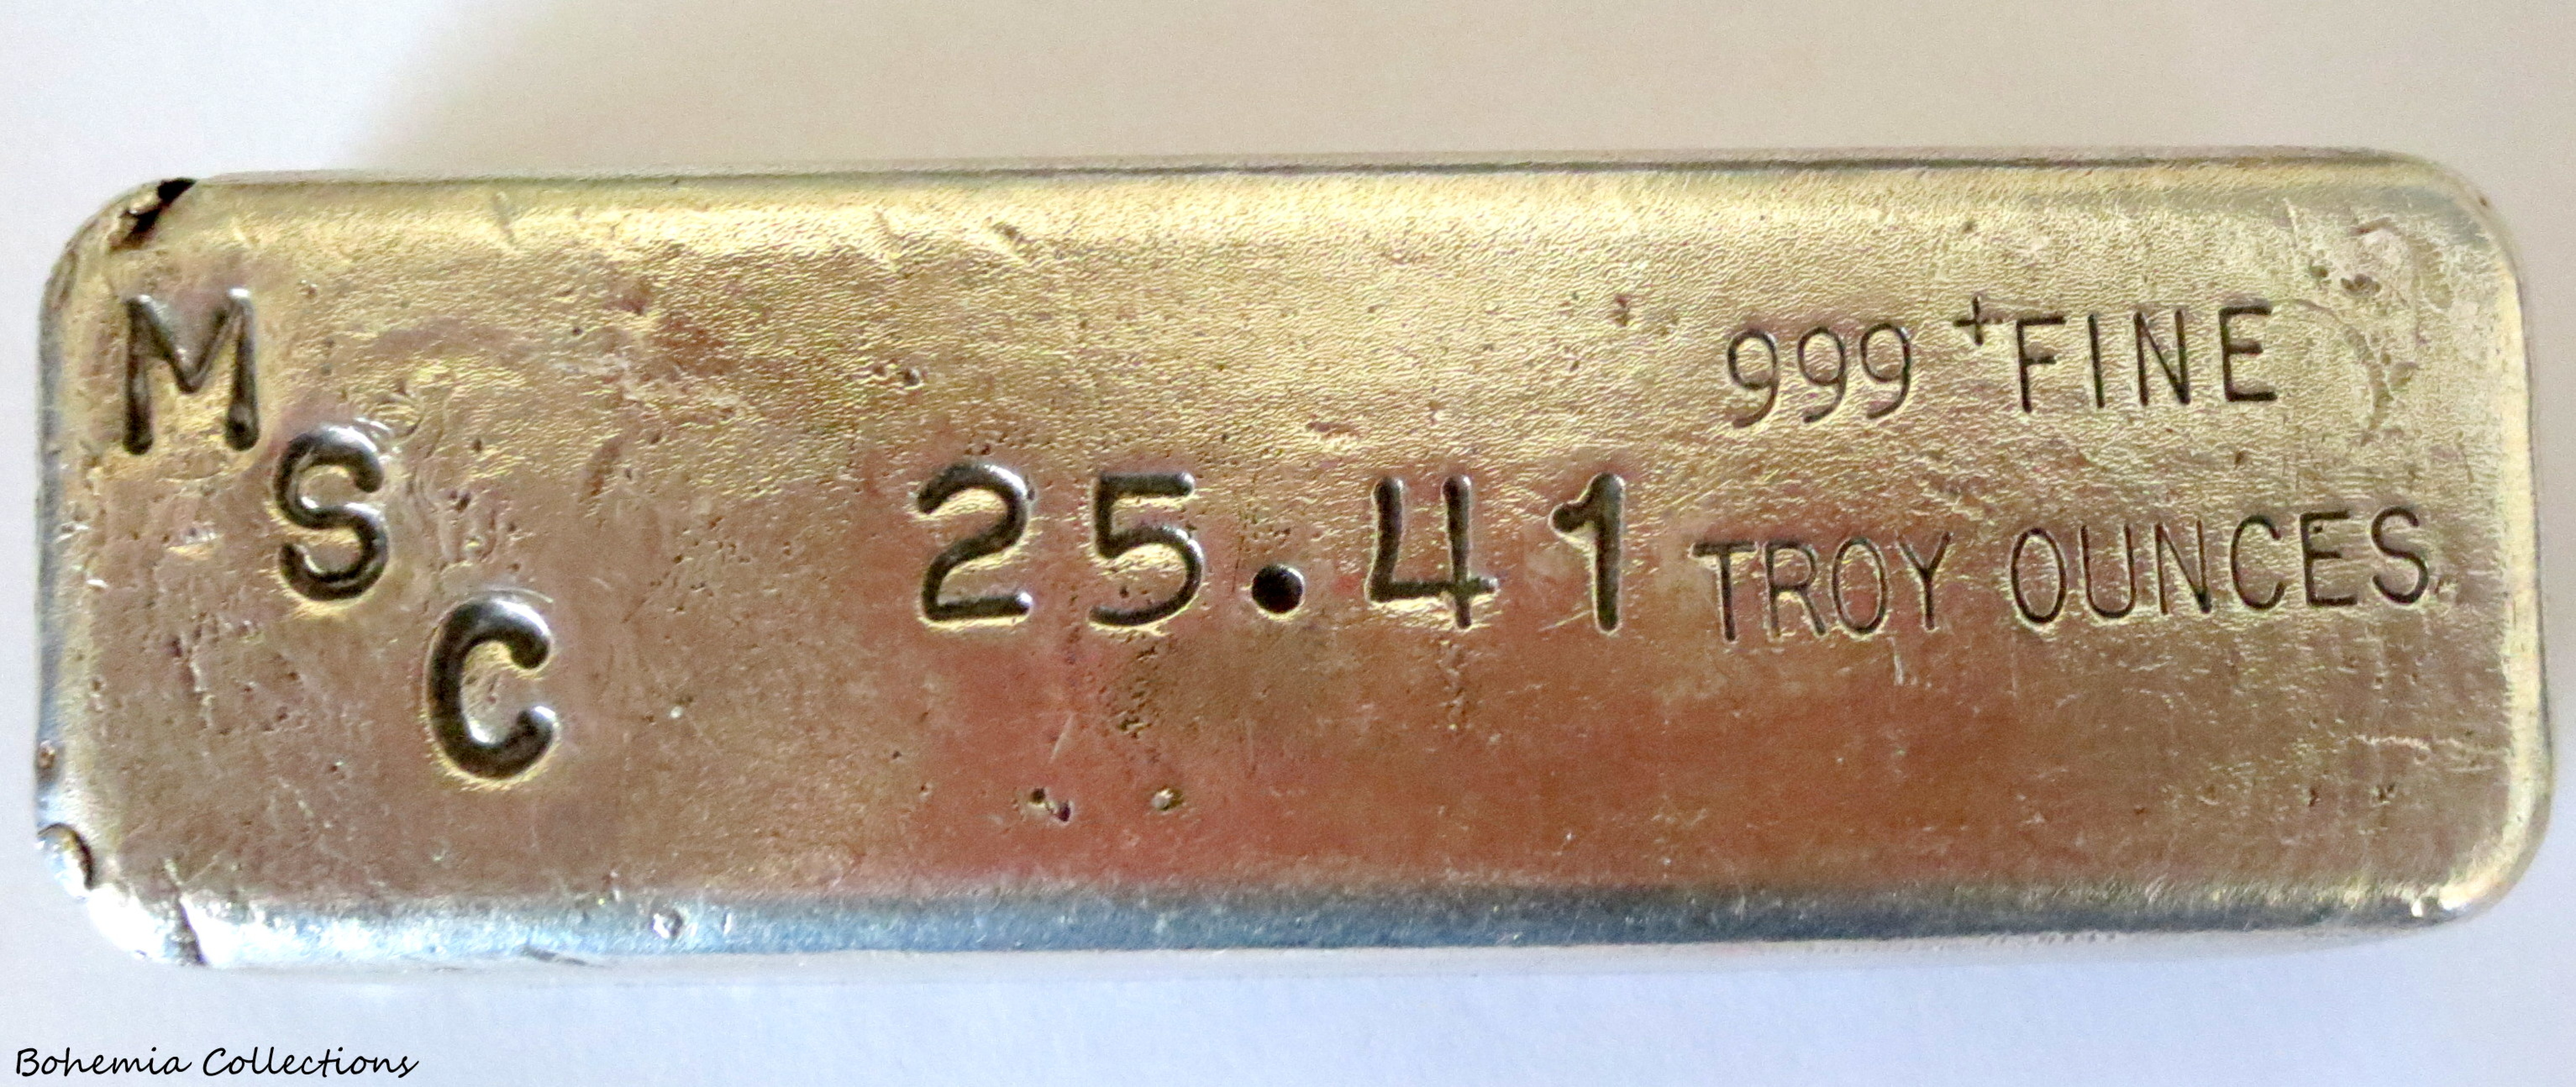 Msc 25 Troy Ounce Silver Bar Poured